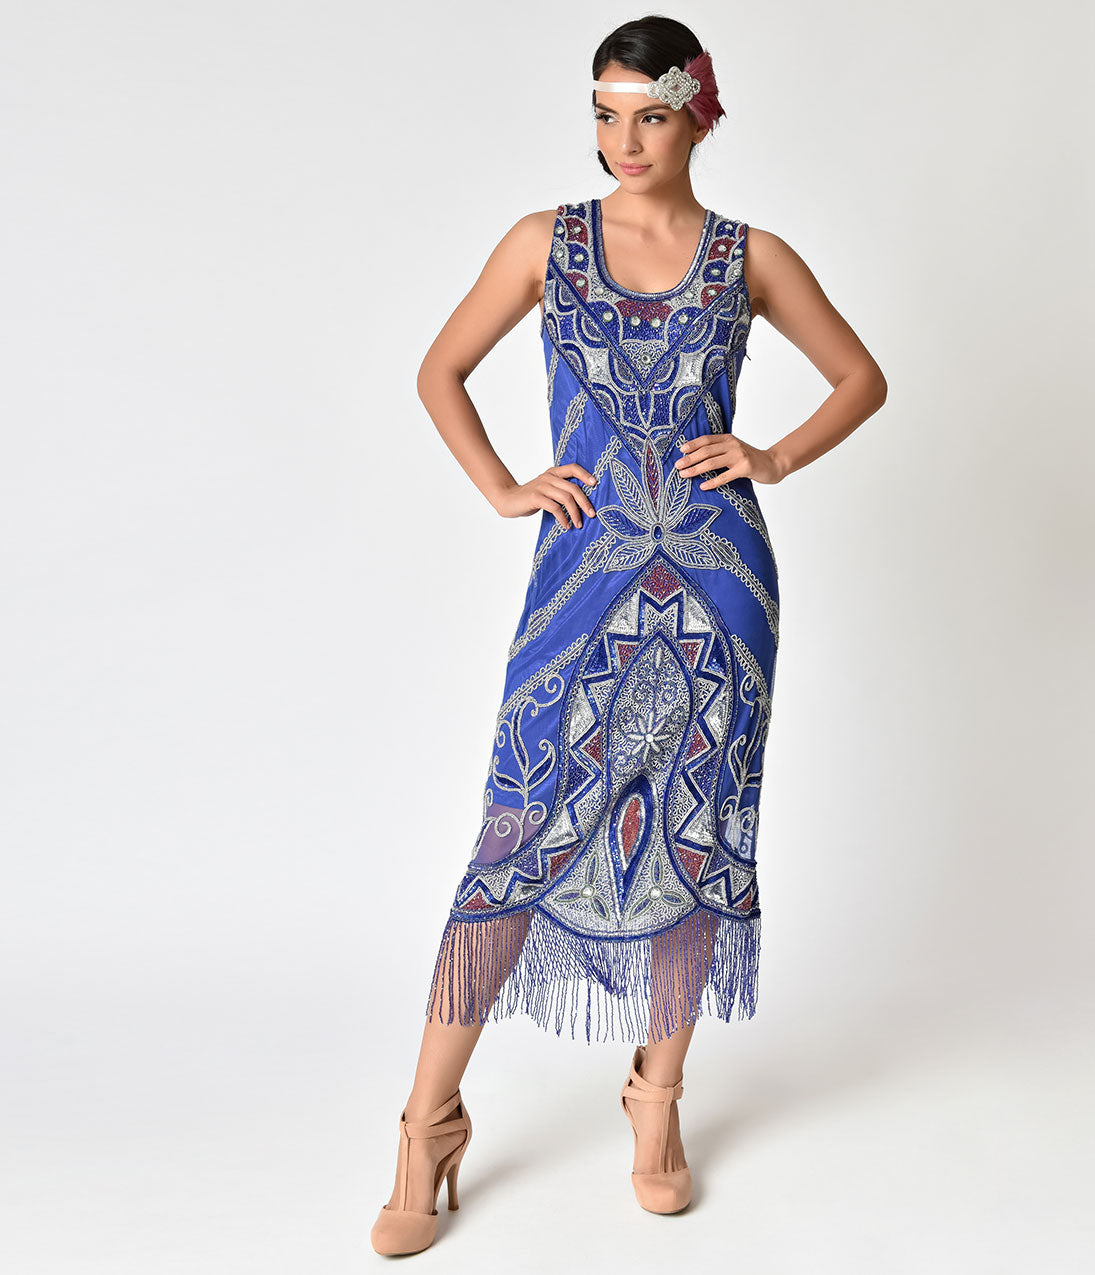 1920s Style Dresses, Flapper Dresses 1920S Style Royal Blue With Fringe  Silver Beading Silk Flapper Dress $245.00 AT vintagedancer.com